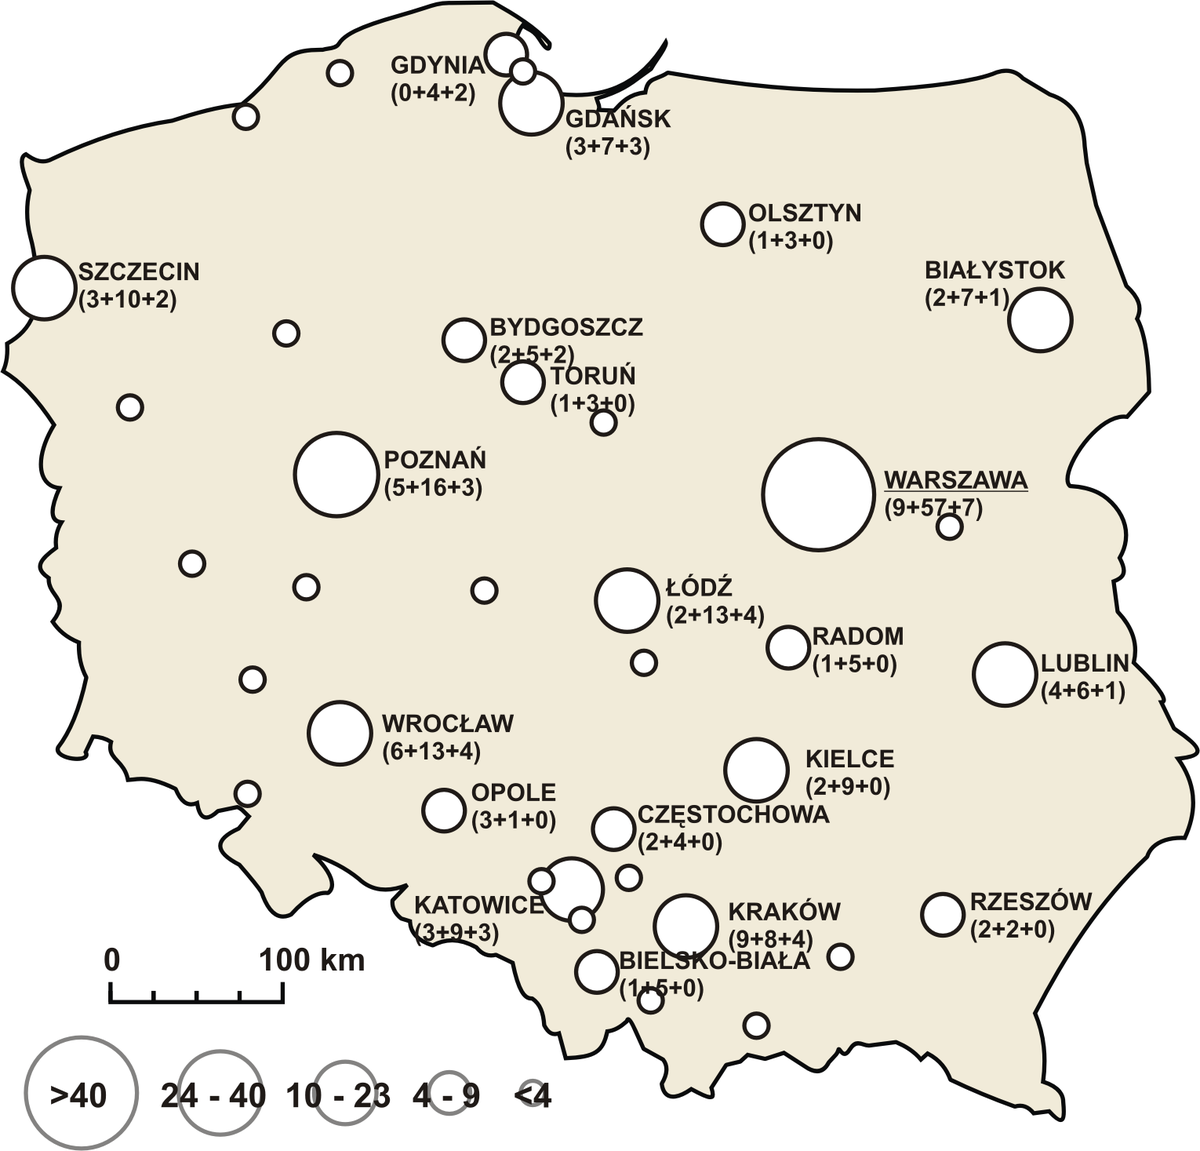 List of universities in Poland - Wikipedia